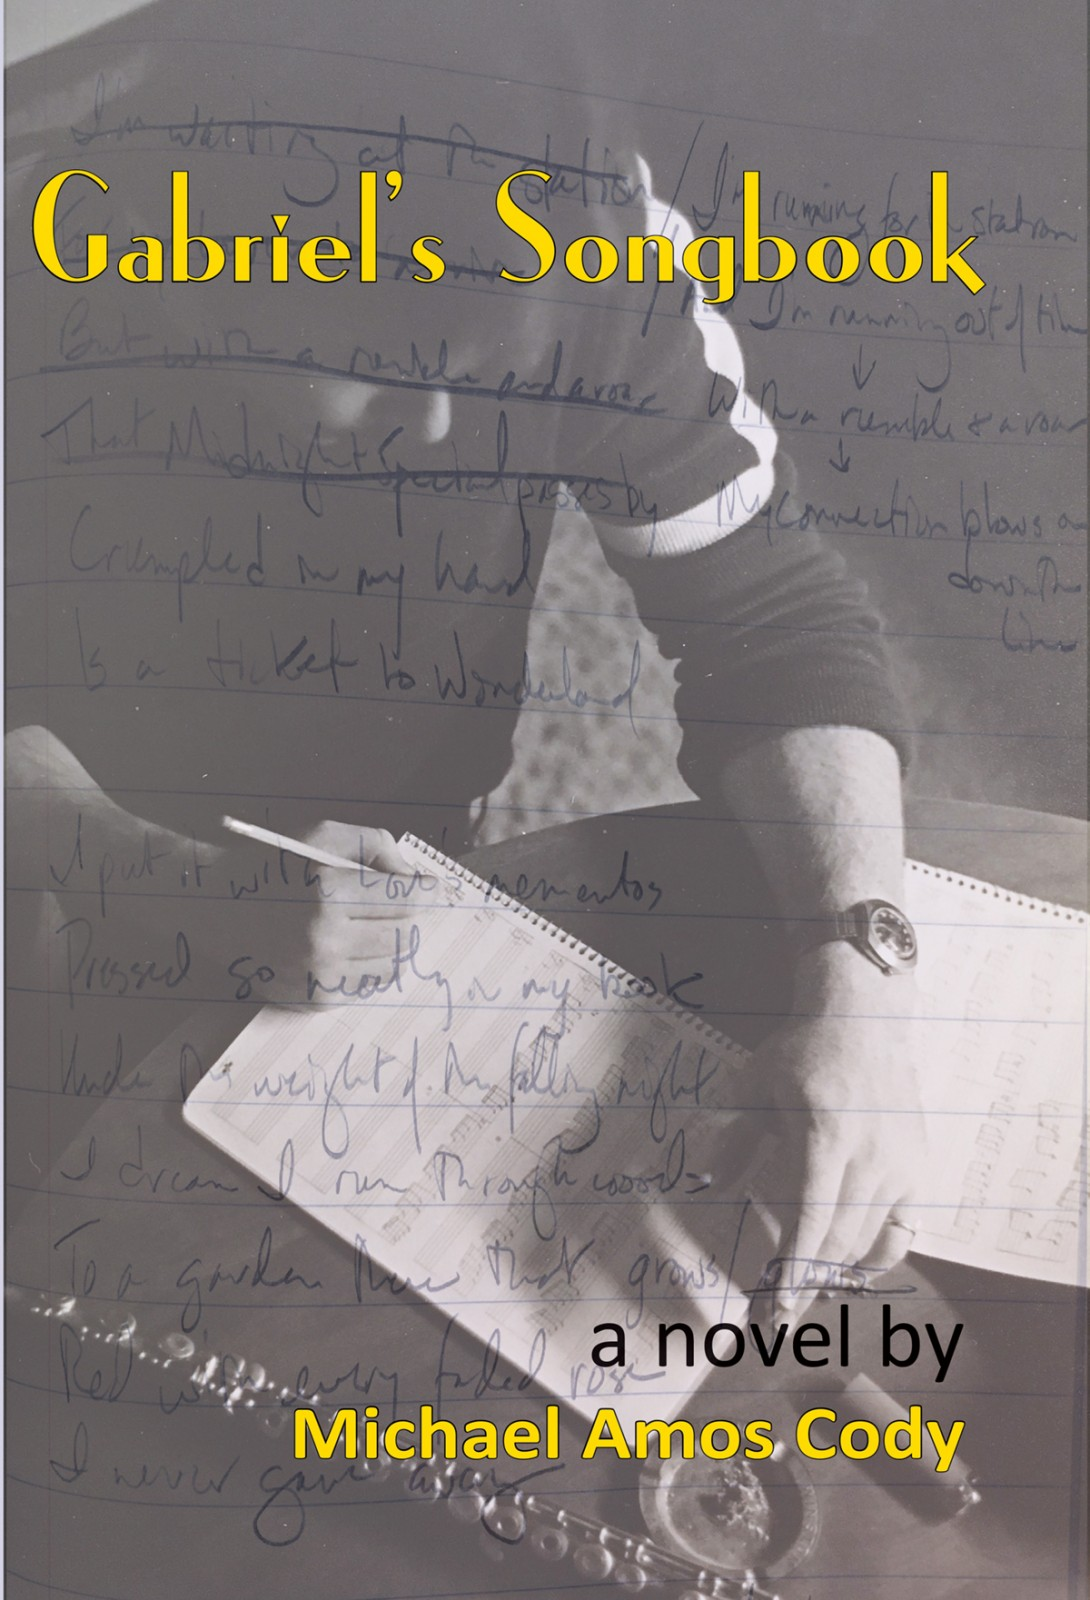 Gabriel's Songbook by Author Michael Amos Cody